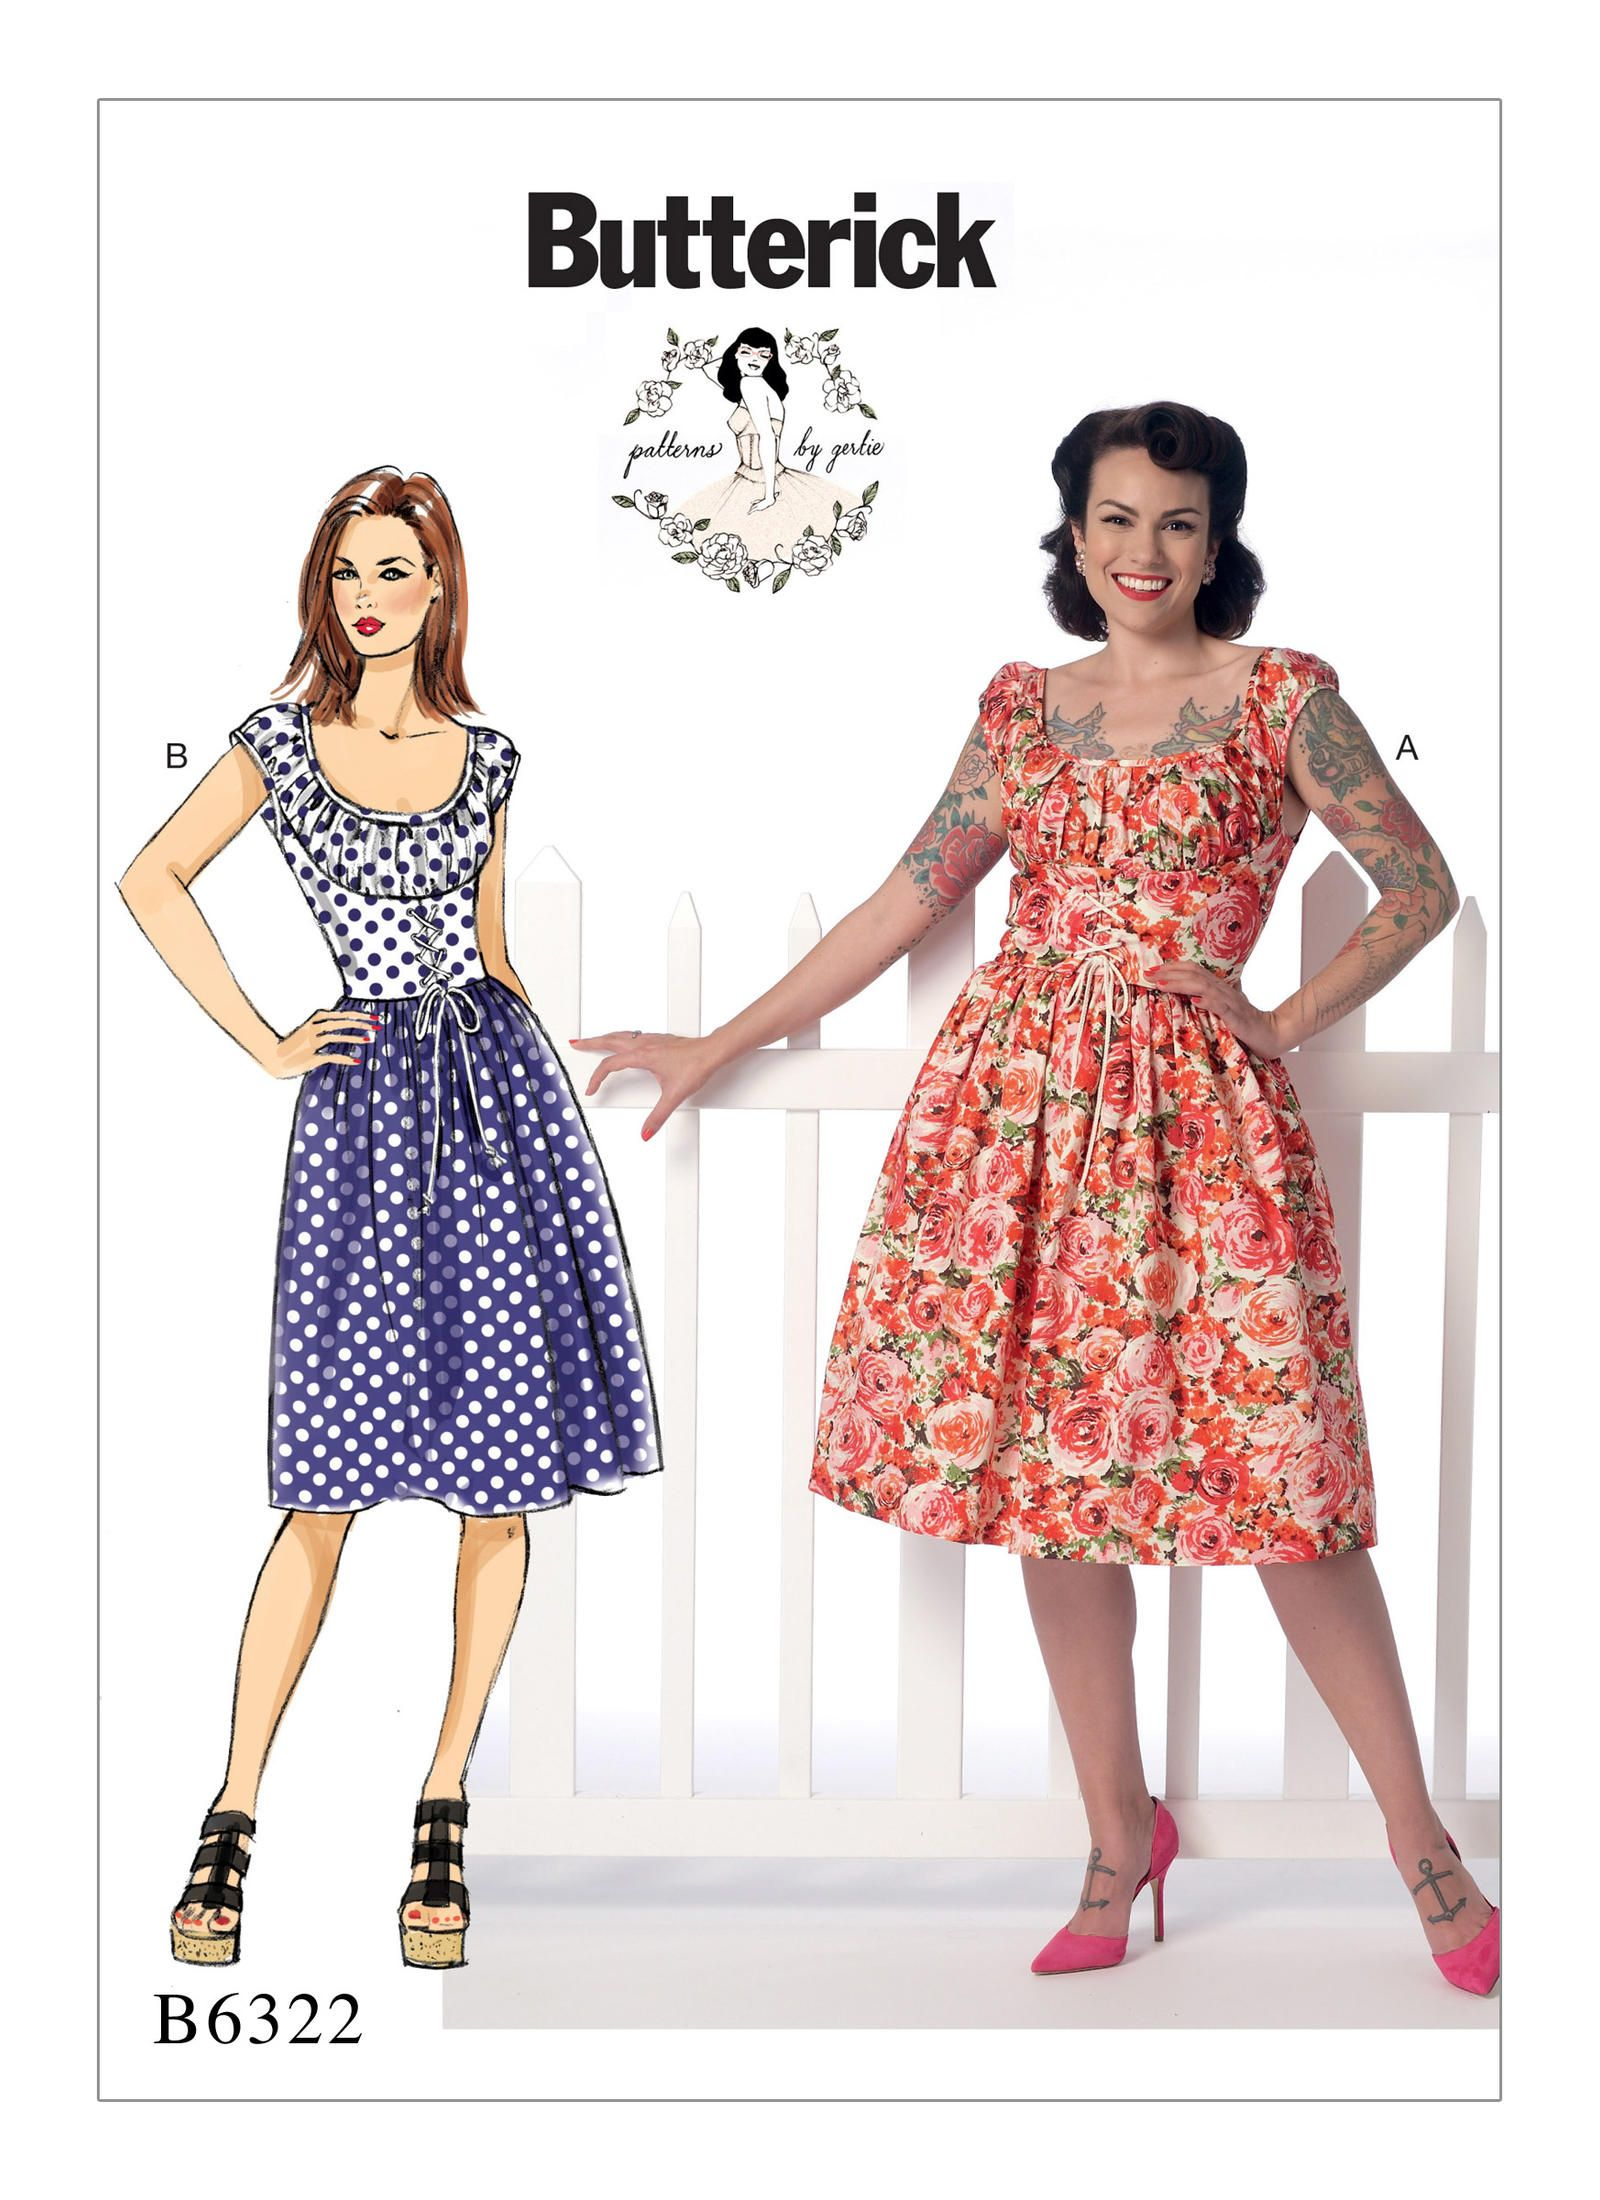 B6322 butterick patterns another cute pattern more gathering misses ruched corset style dress butterick sewing pattern 6322 from sew essential free delivery on orders and over jeuxipadfo Choice Image